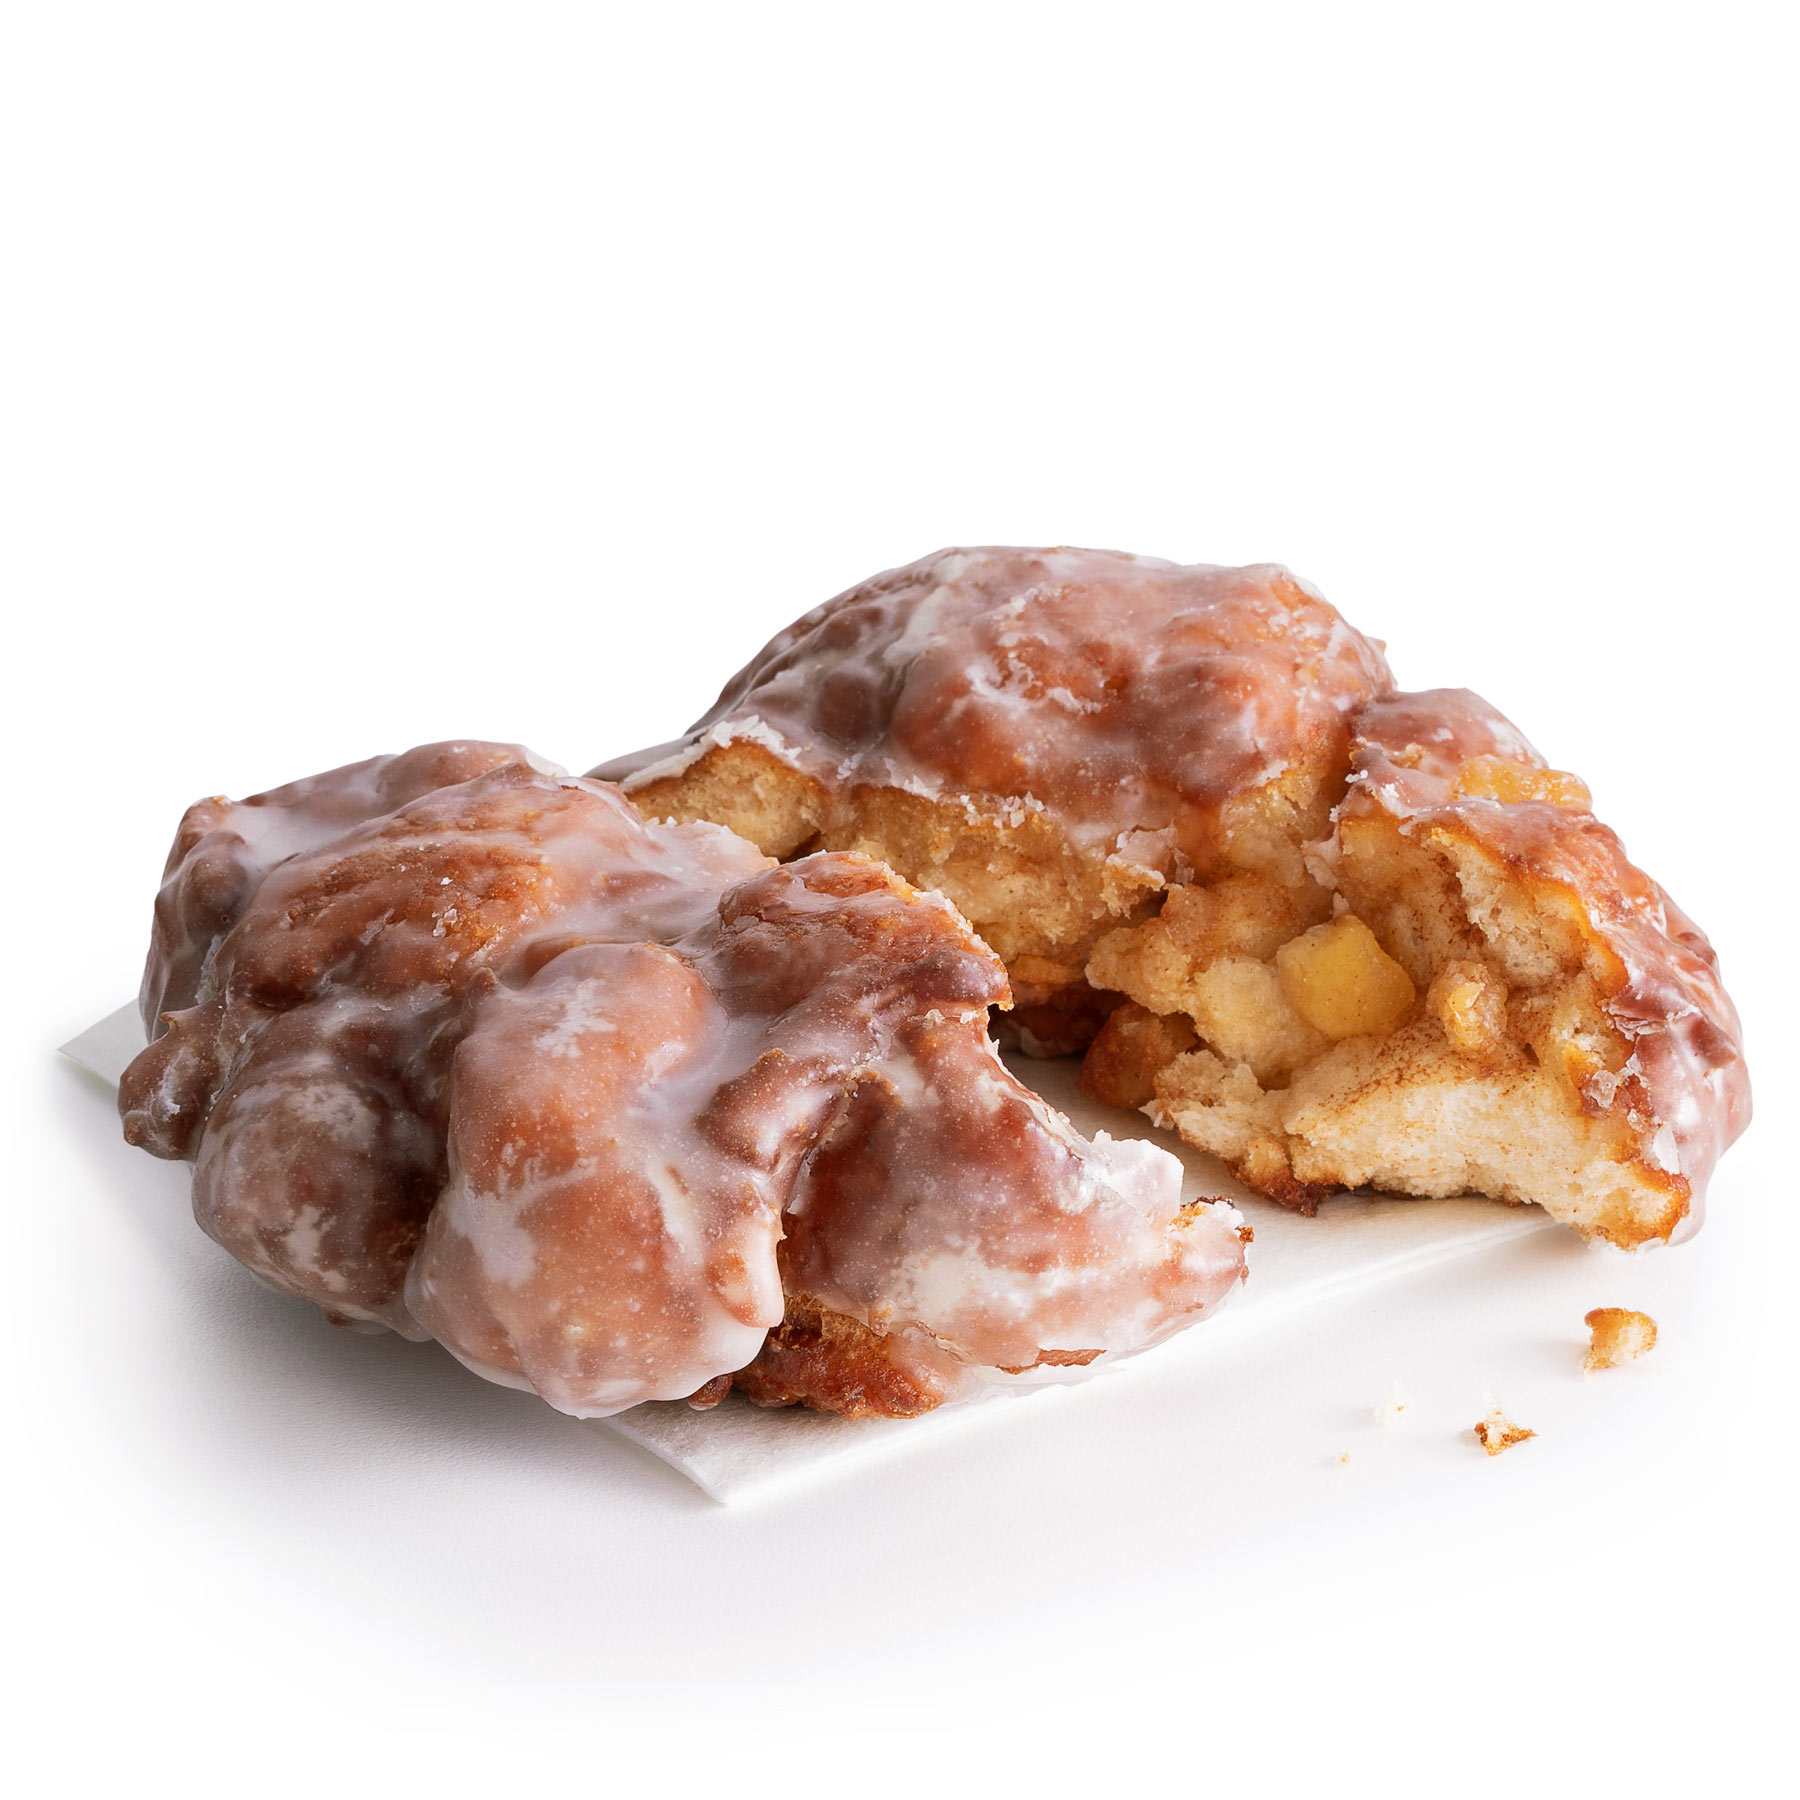 A freshly made Apple Fritter from 7-Eleven, filled with apples, cinnamon and drizzled with a sweet glaze.